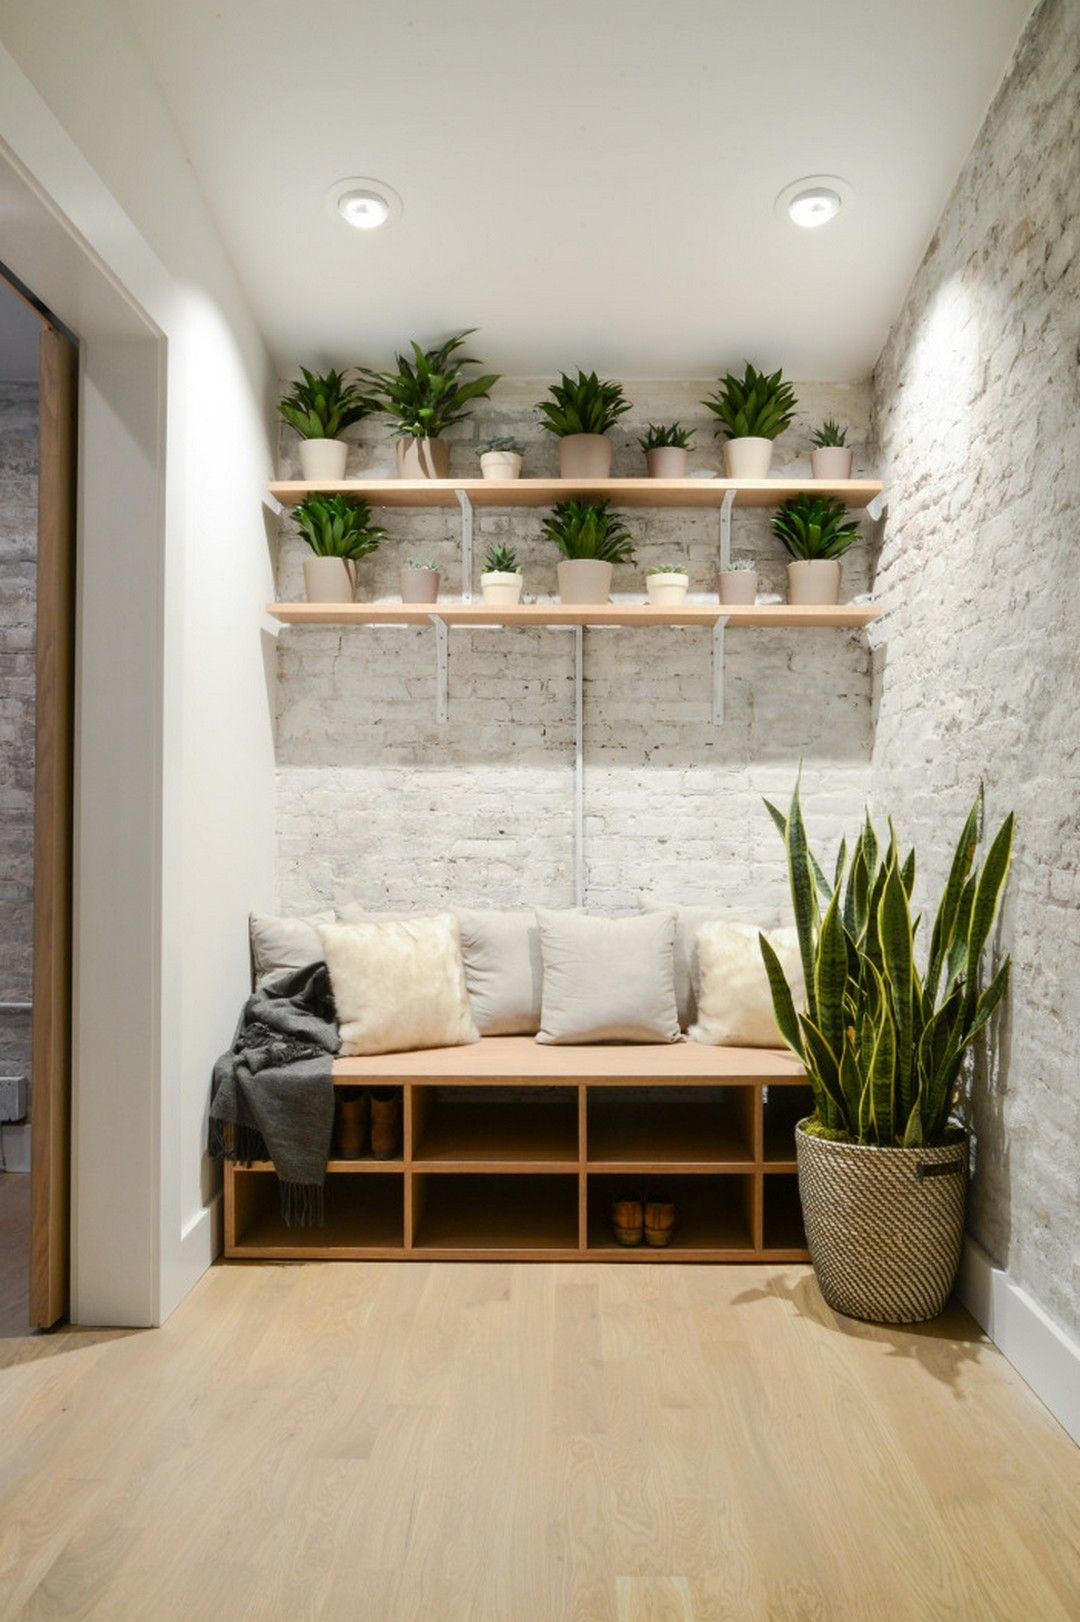 Small space home gym decorating ideas lugares decoración de